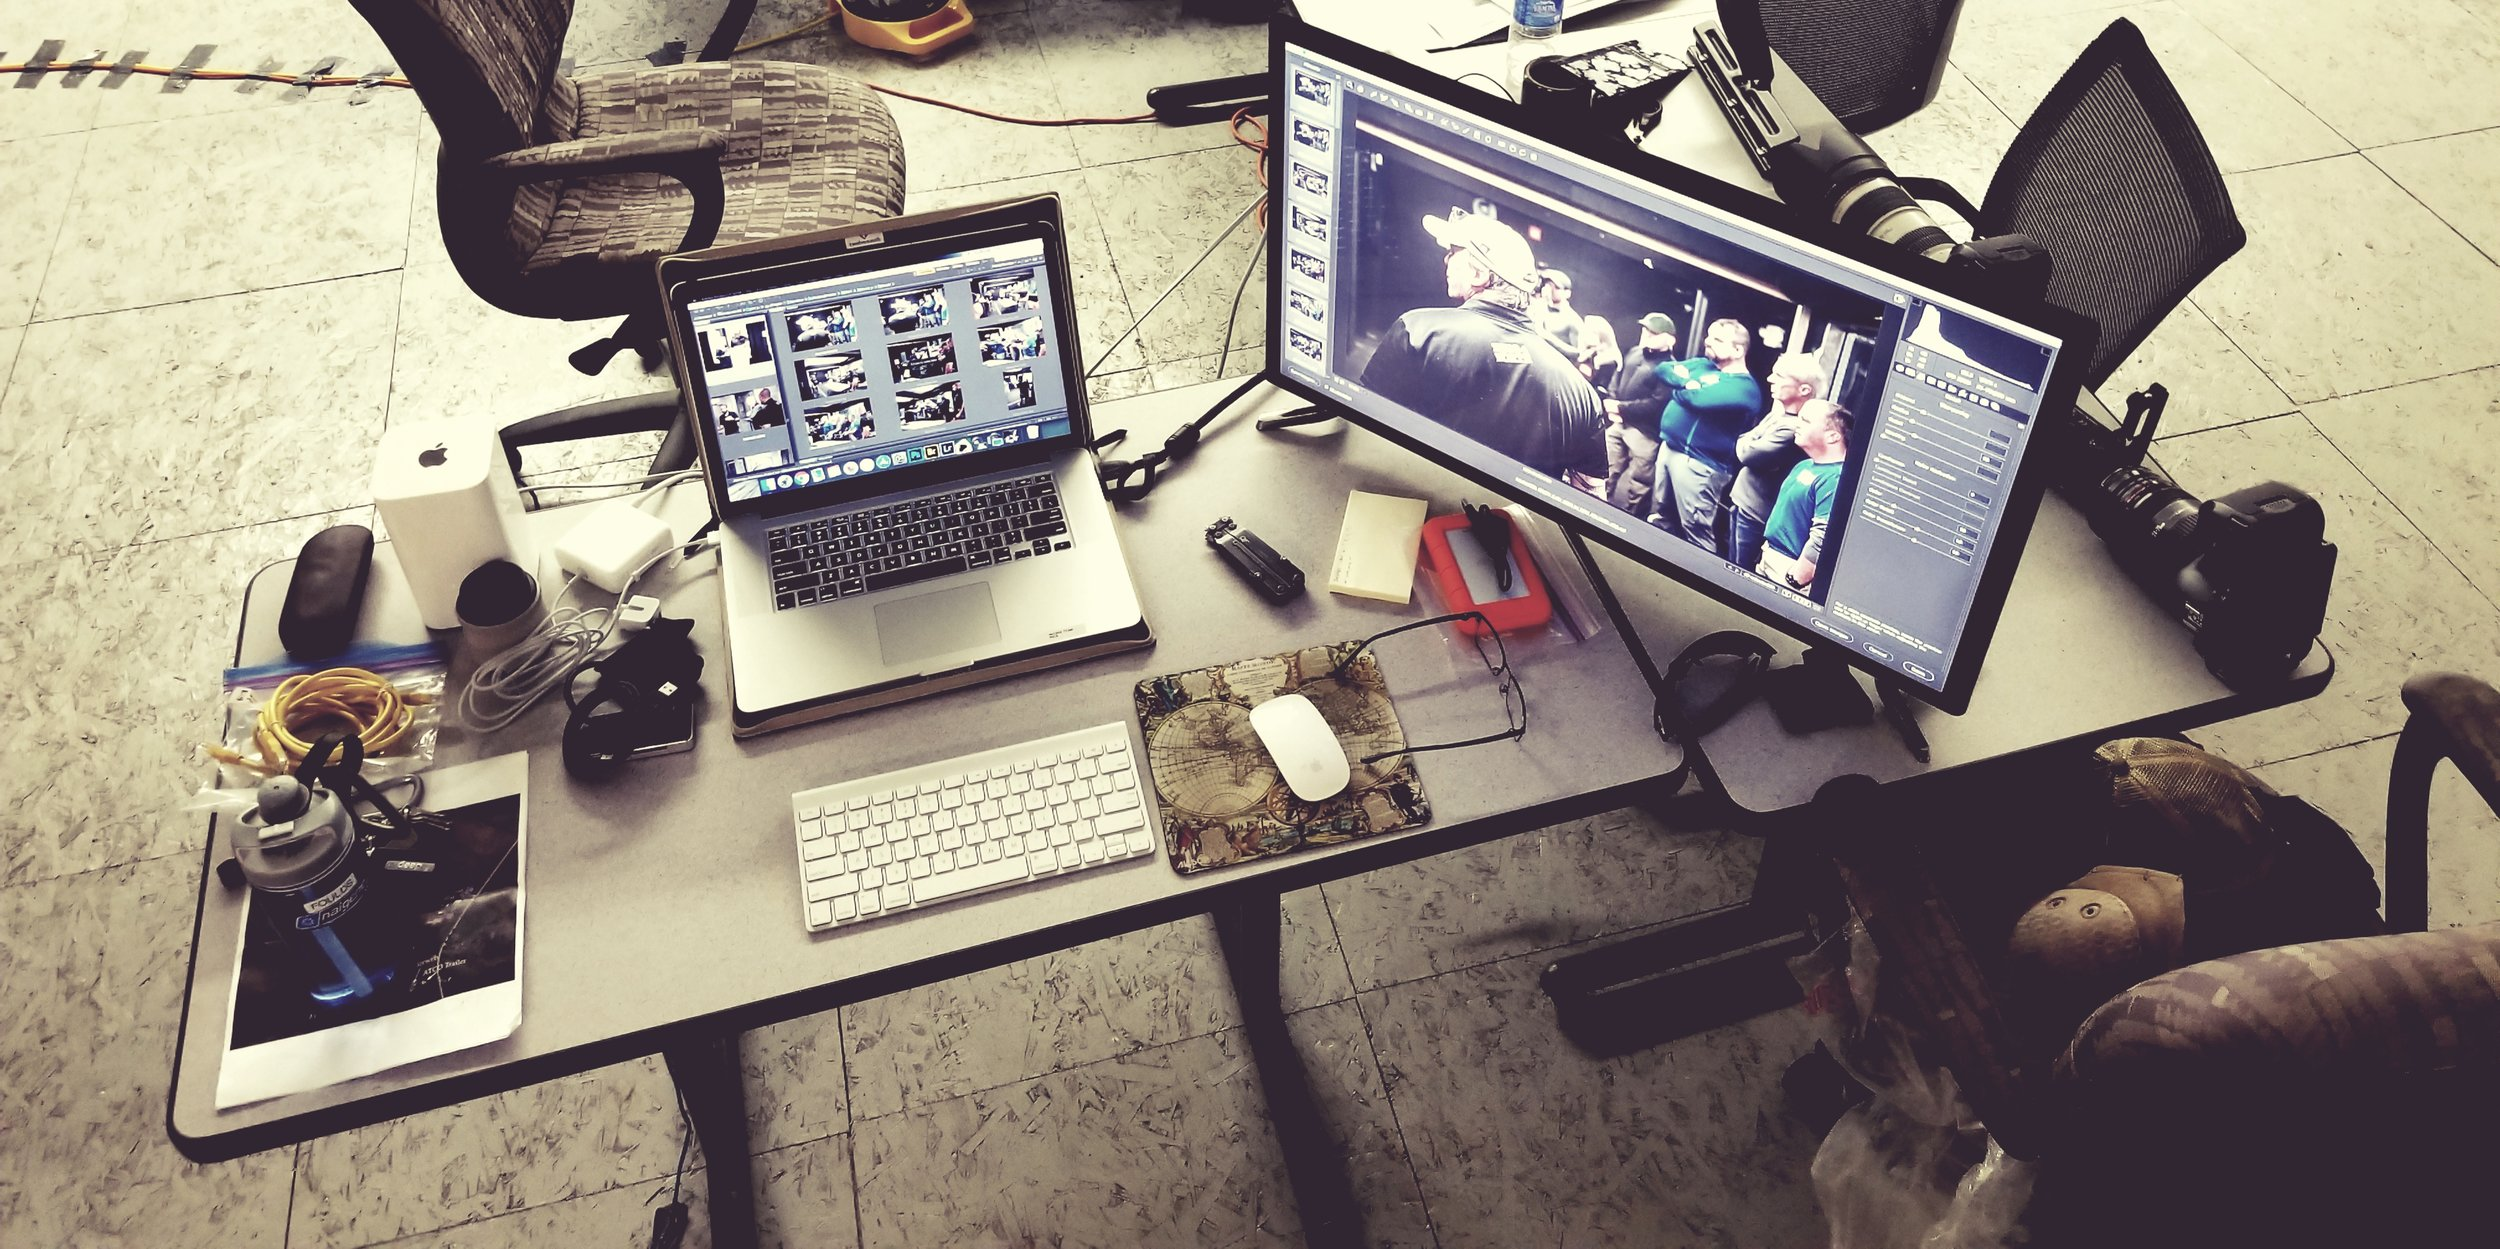 Outside the Wire - Image editing station